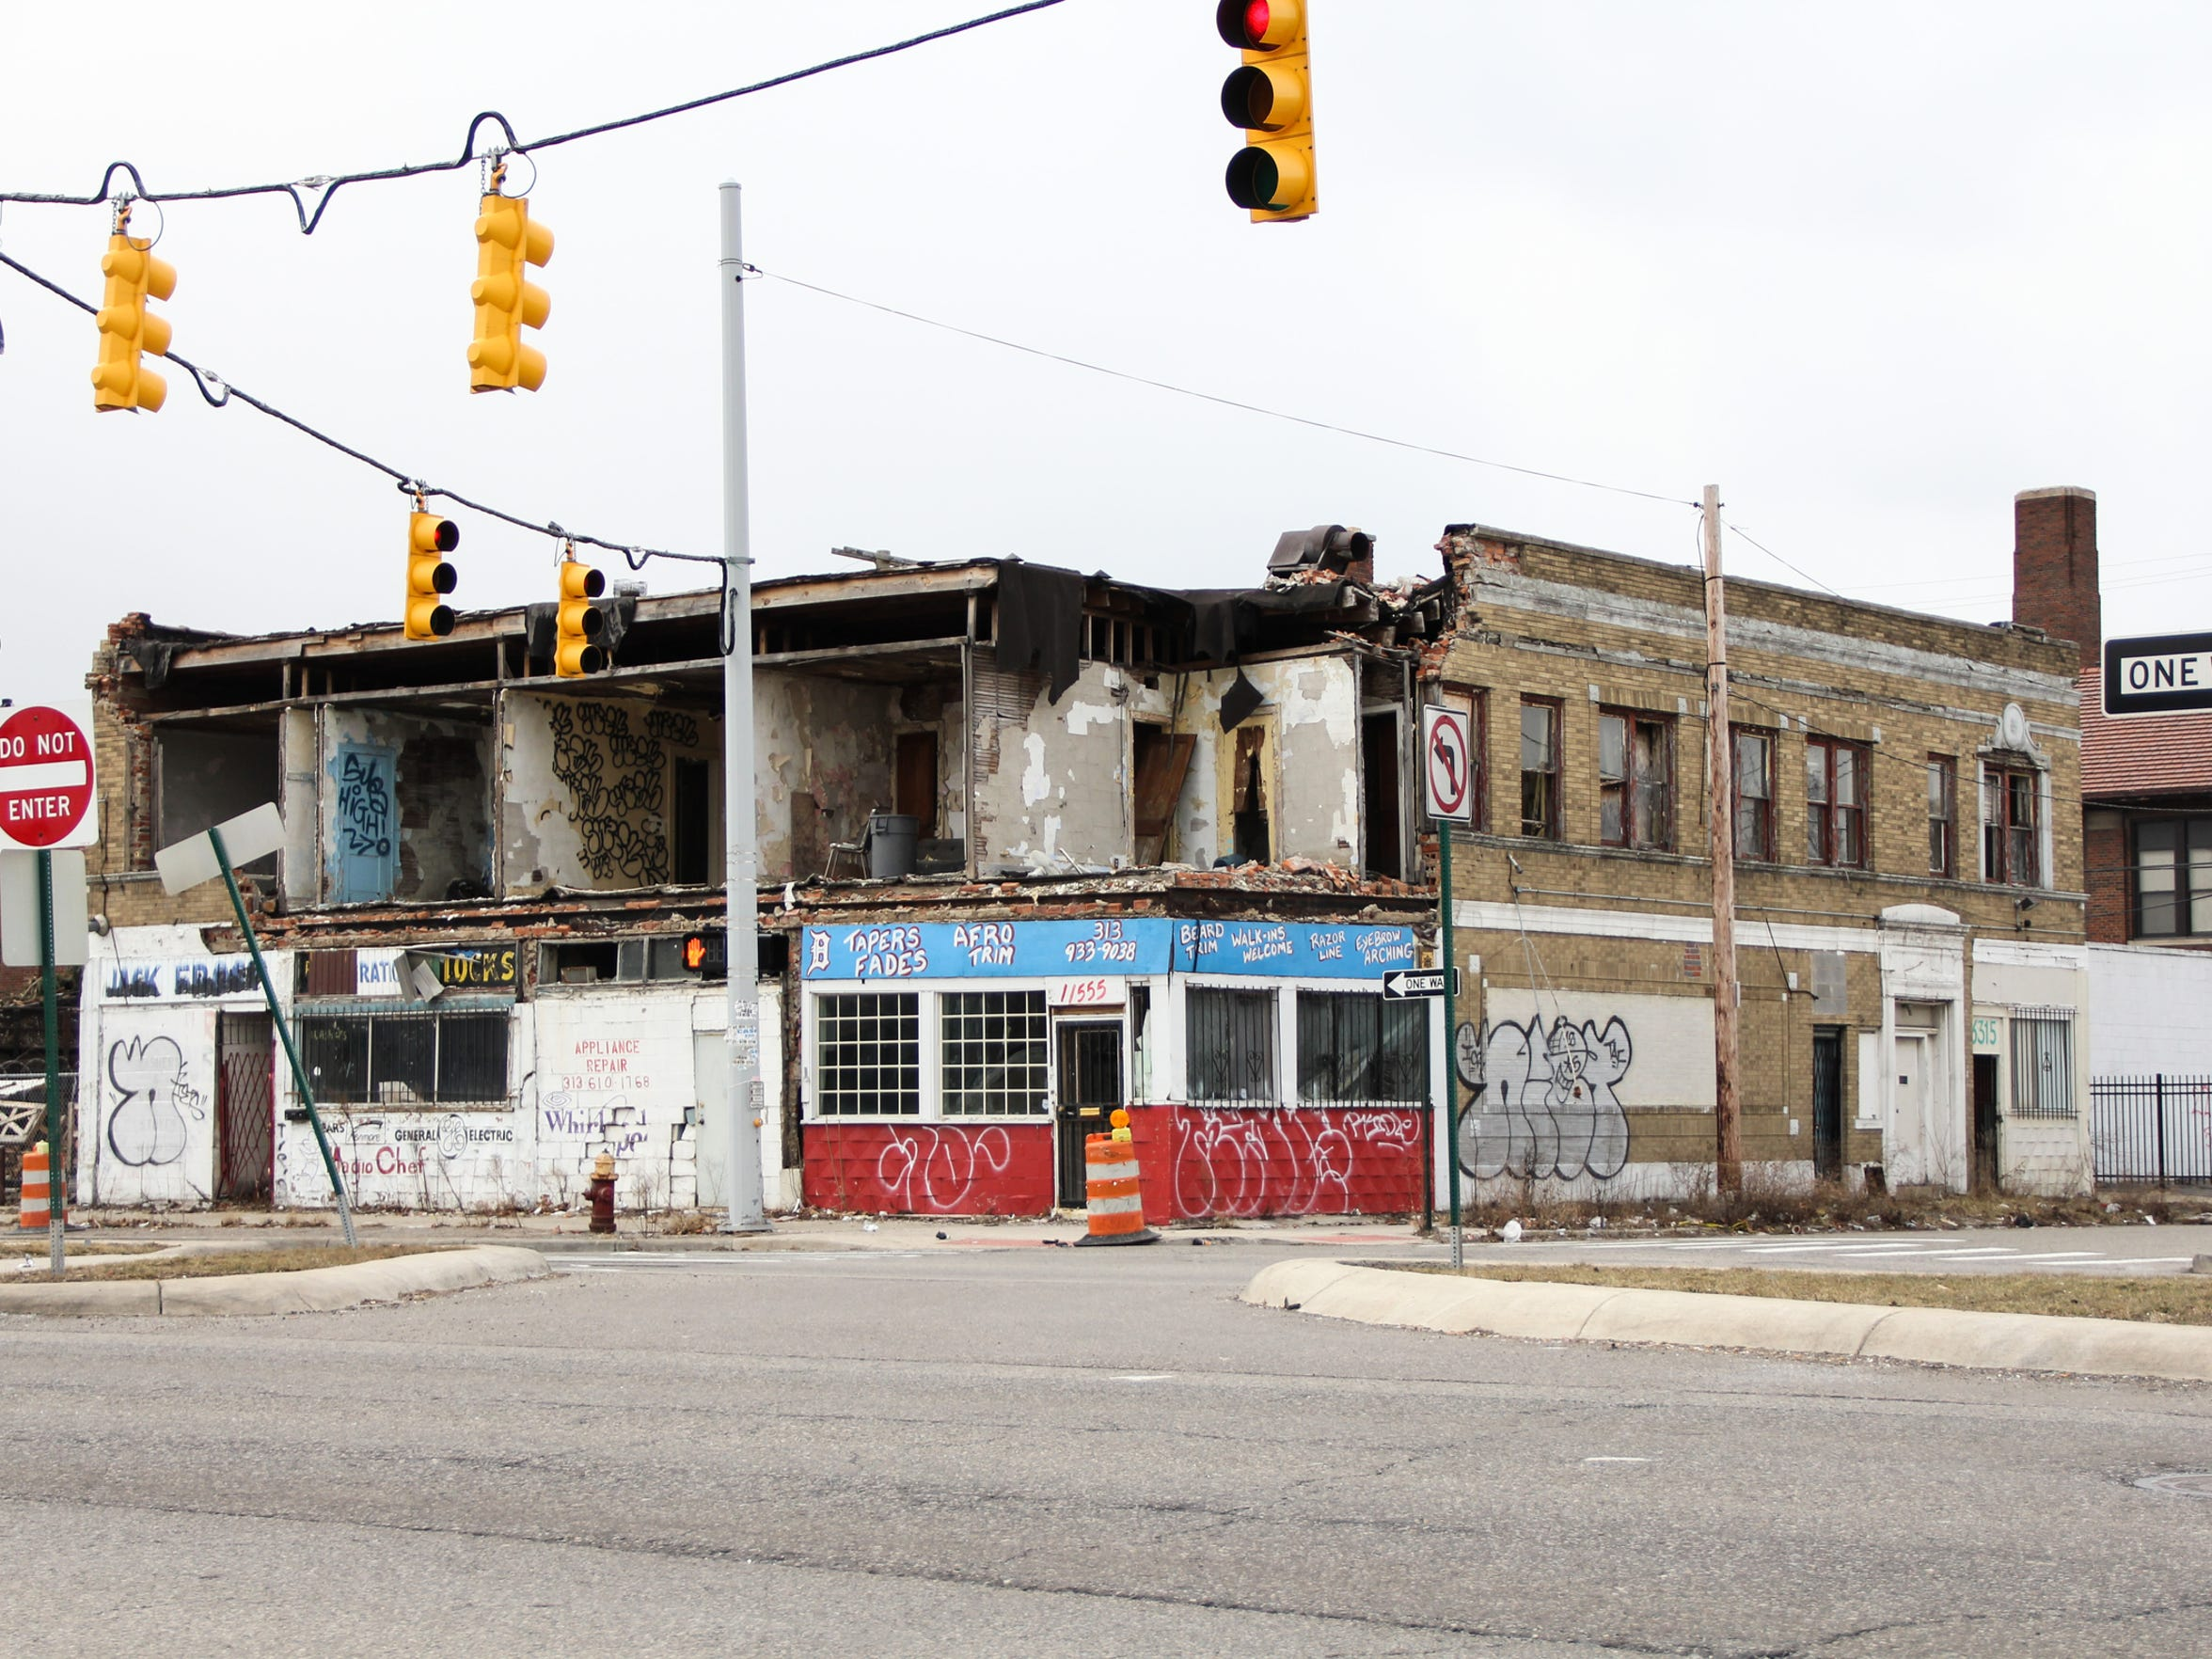 A commercial stretch of Livernois near Grand River in Detroit, in late summer of 2012. This building has since been demolished. Once a thriving center of small business, the area has struggled as population and investment have dwindled.